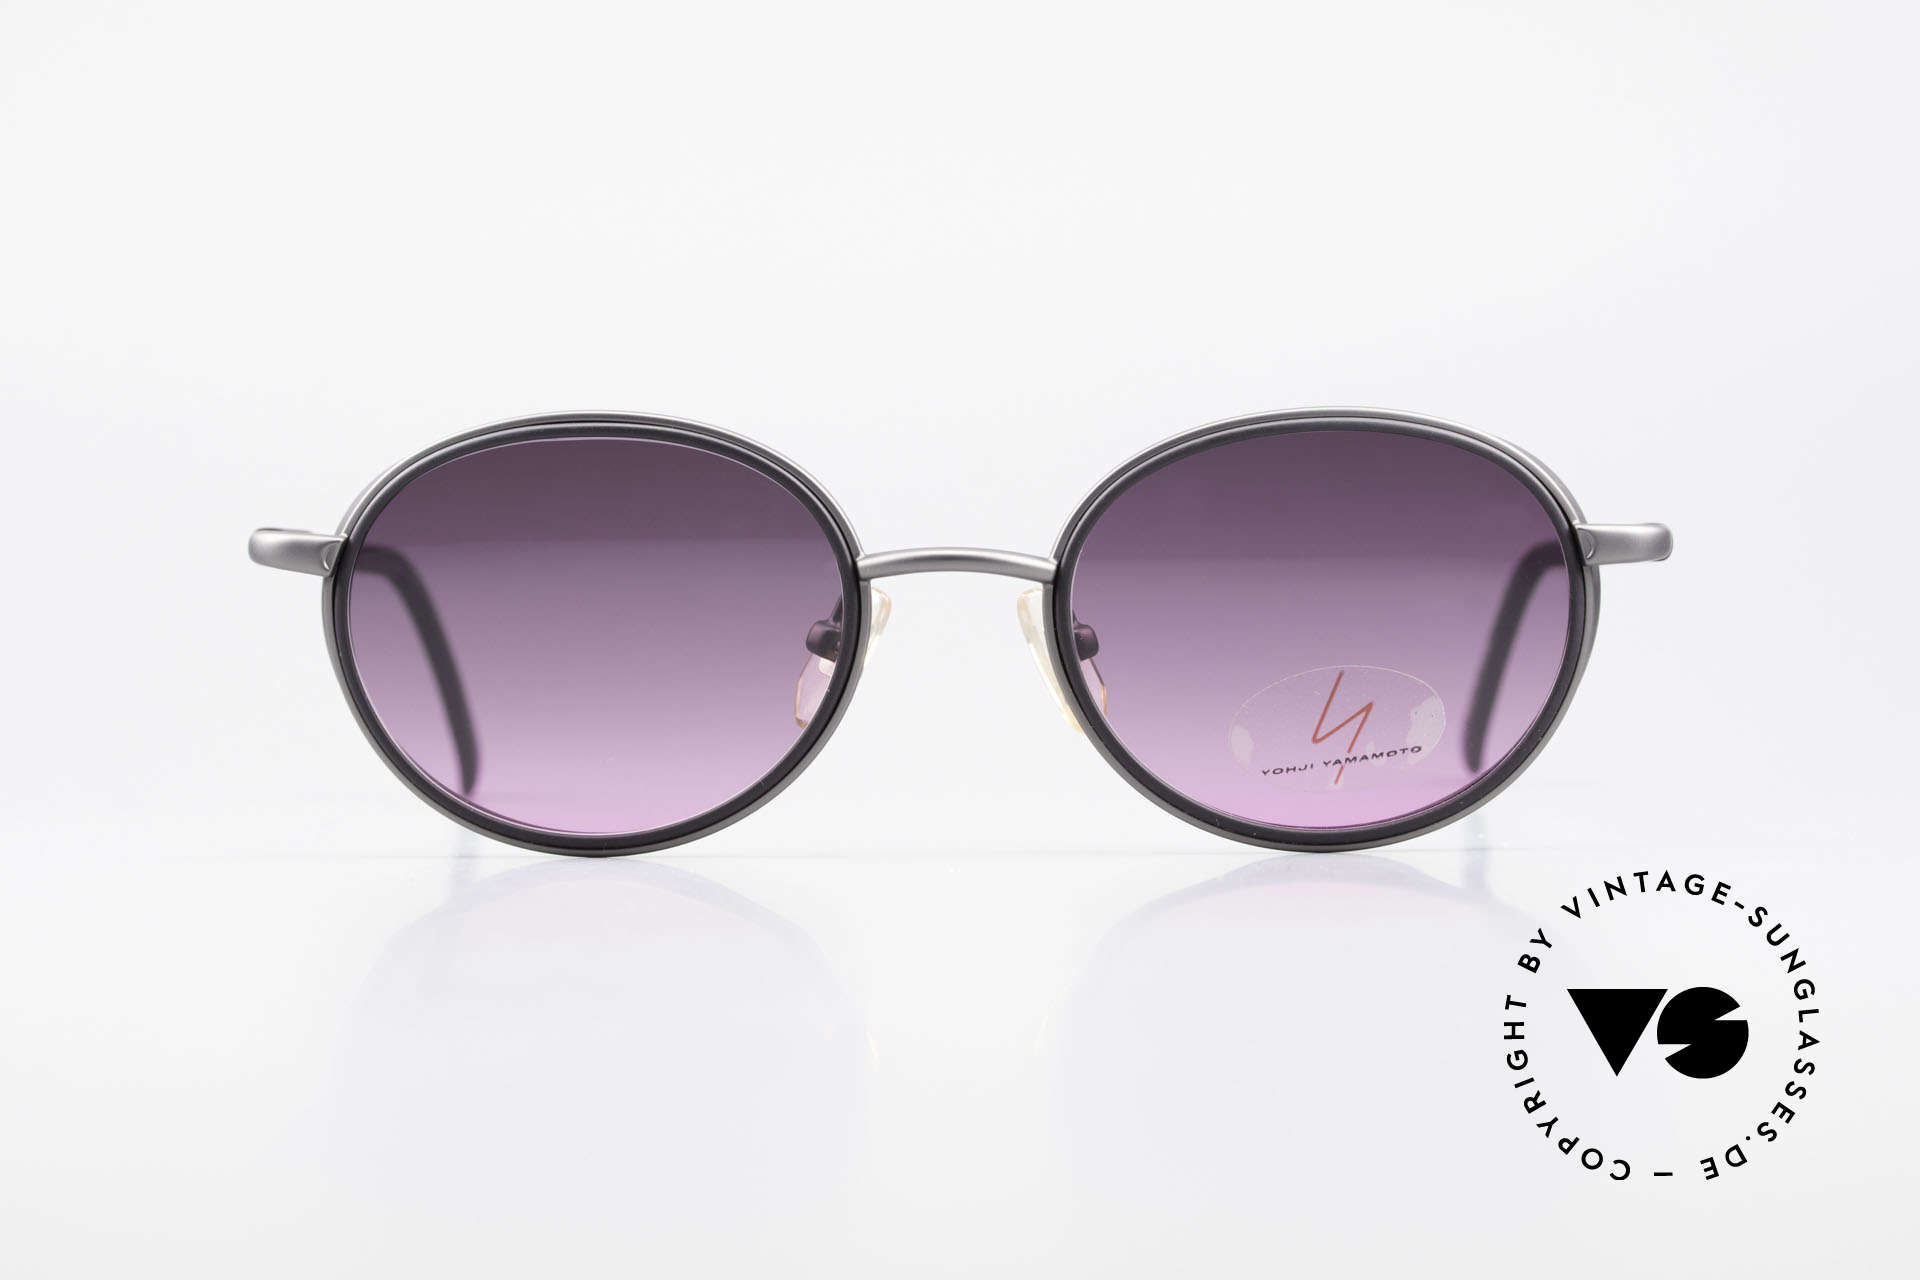 Yohji Yamamoto 51-6201 Side Shields Sunglasses 90's, 1st class craftsmanship and materials (lightweight titan), Made for Women